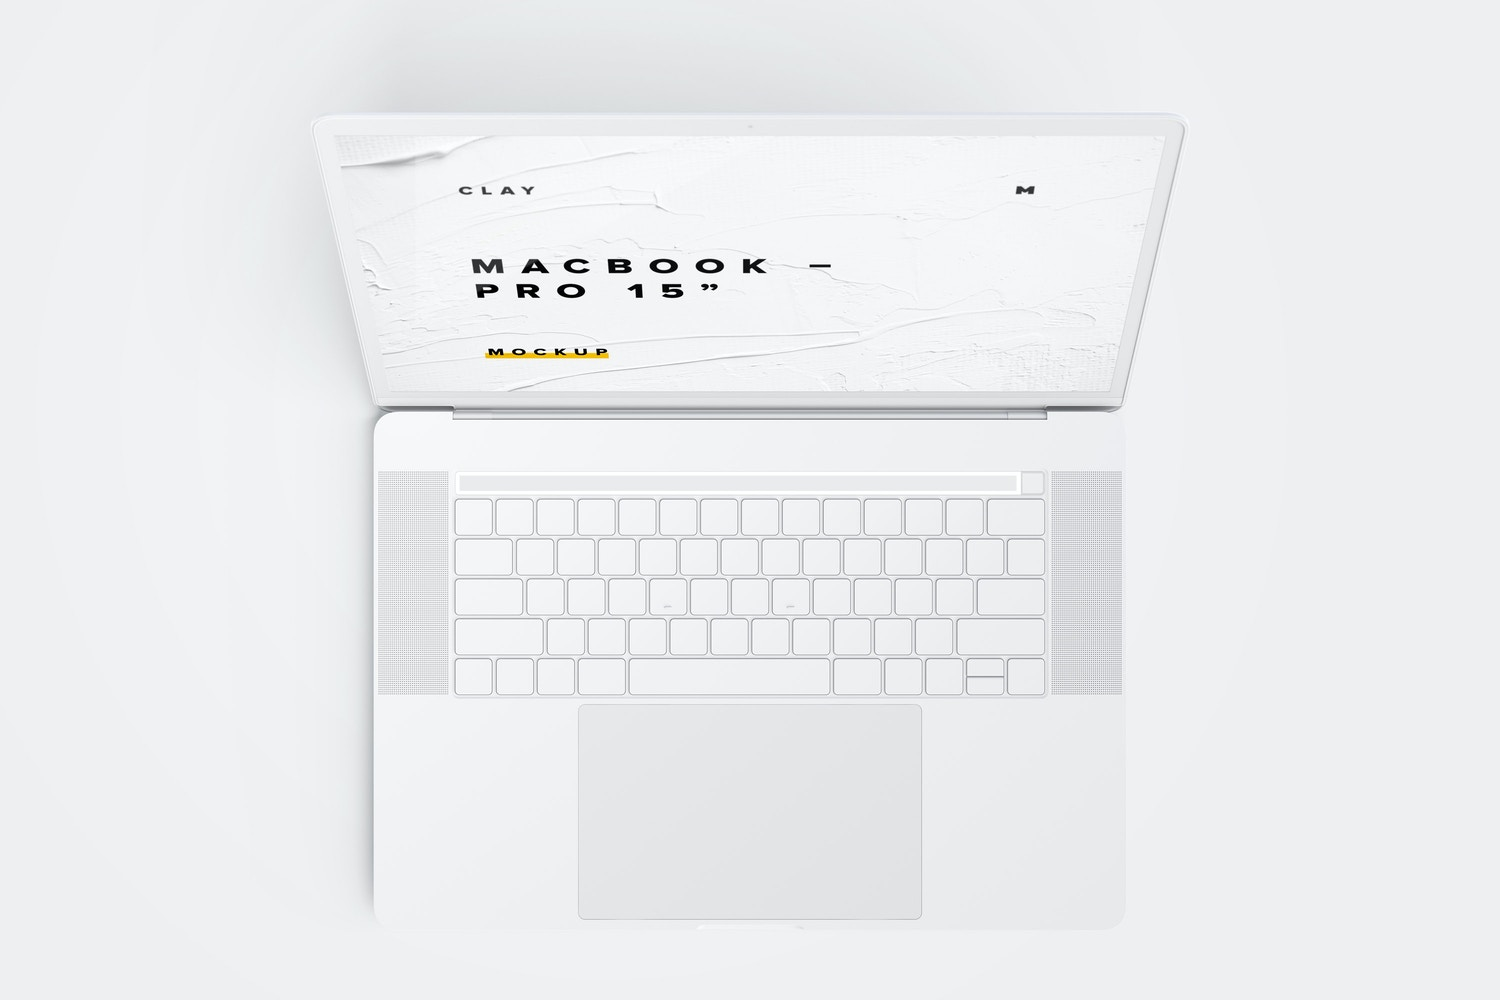 """Clay MacBook Pro 15"""" with Touch Bar, Top View Mockup"""